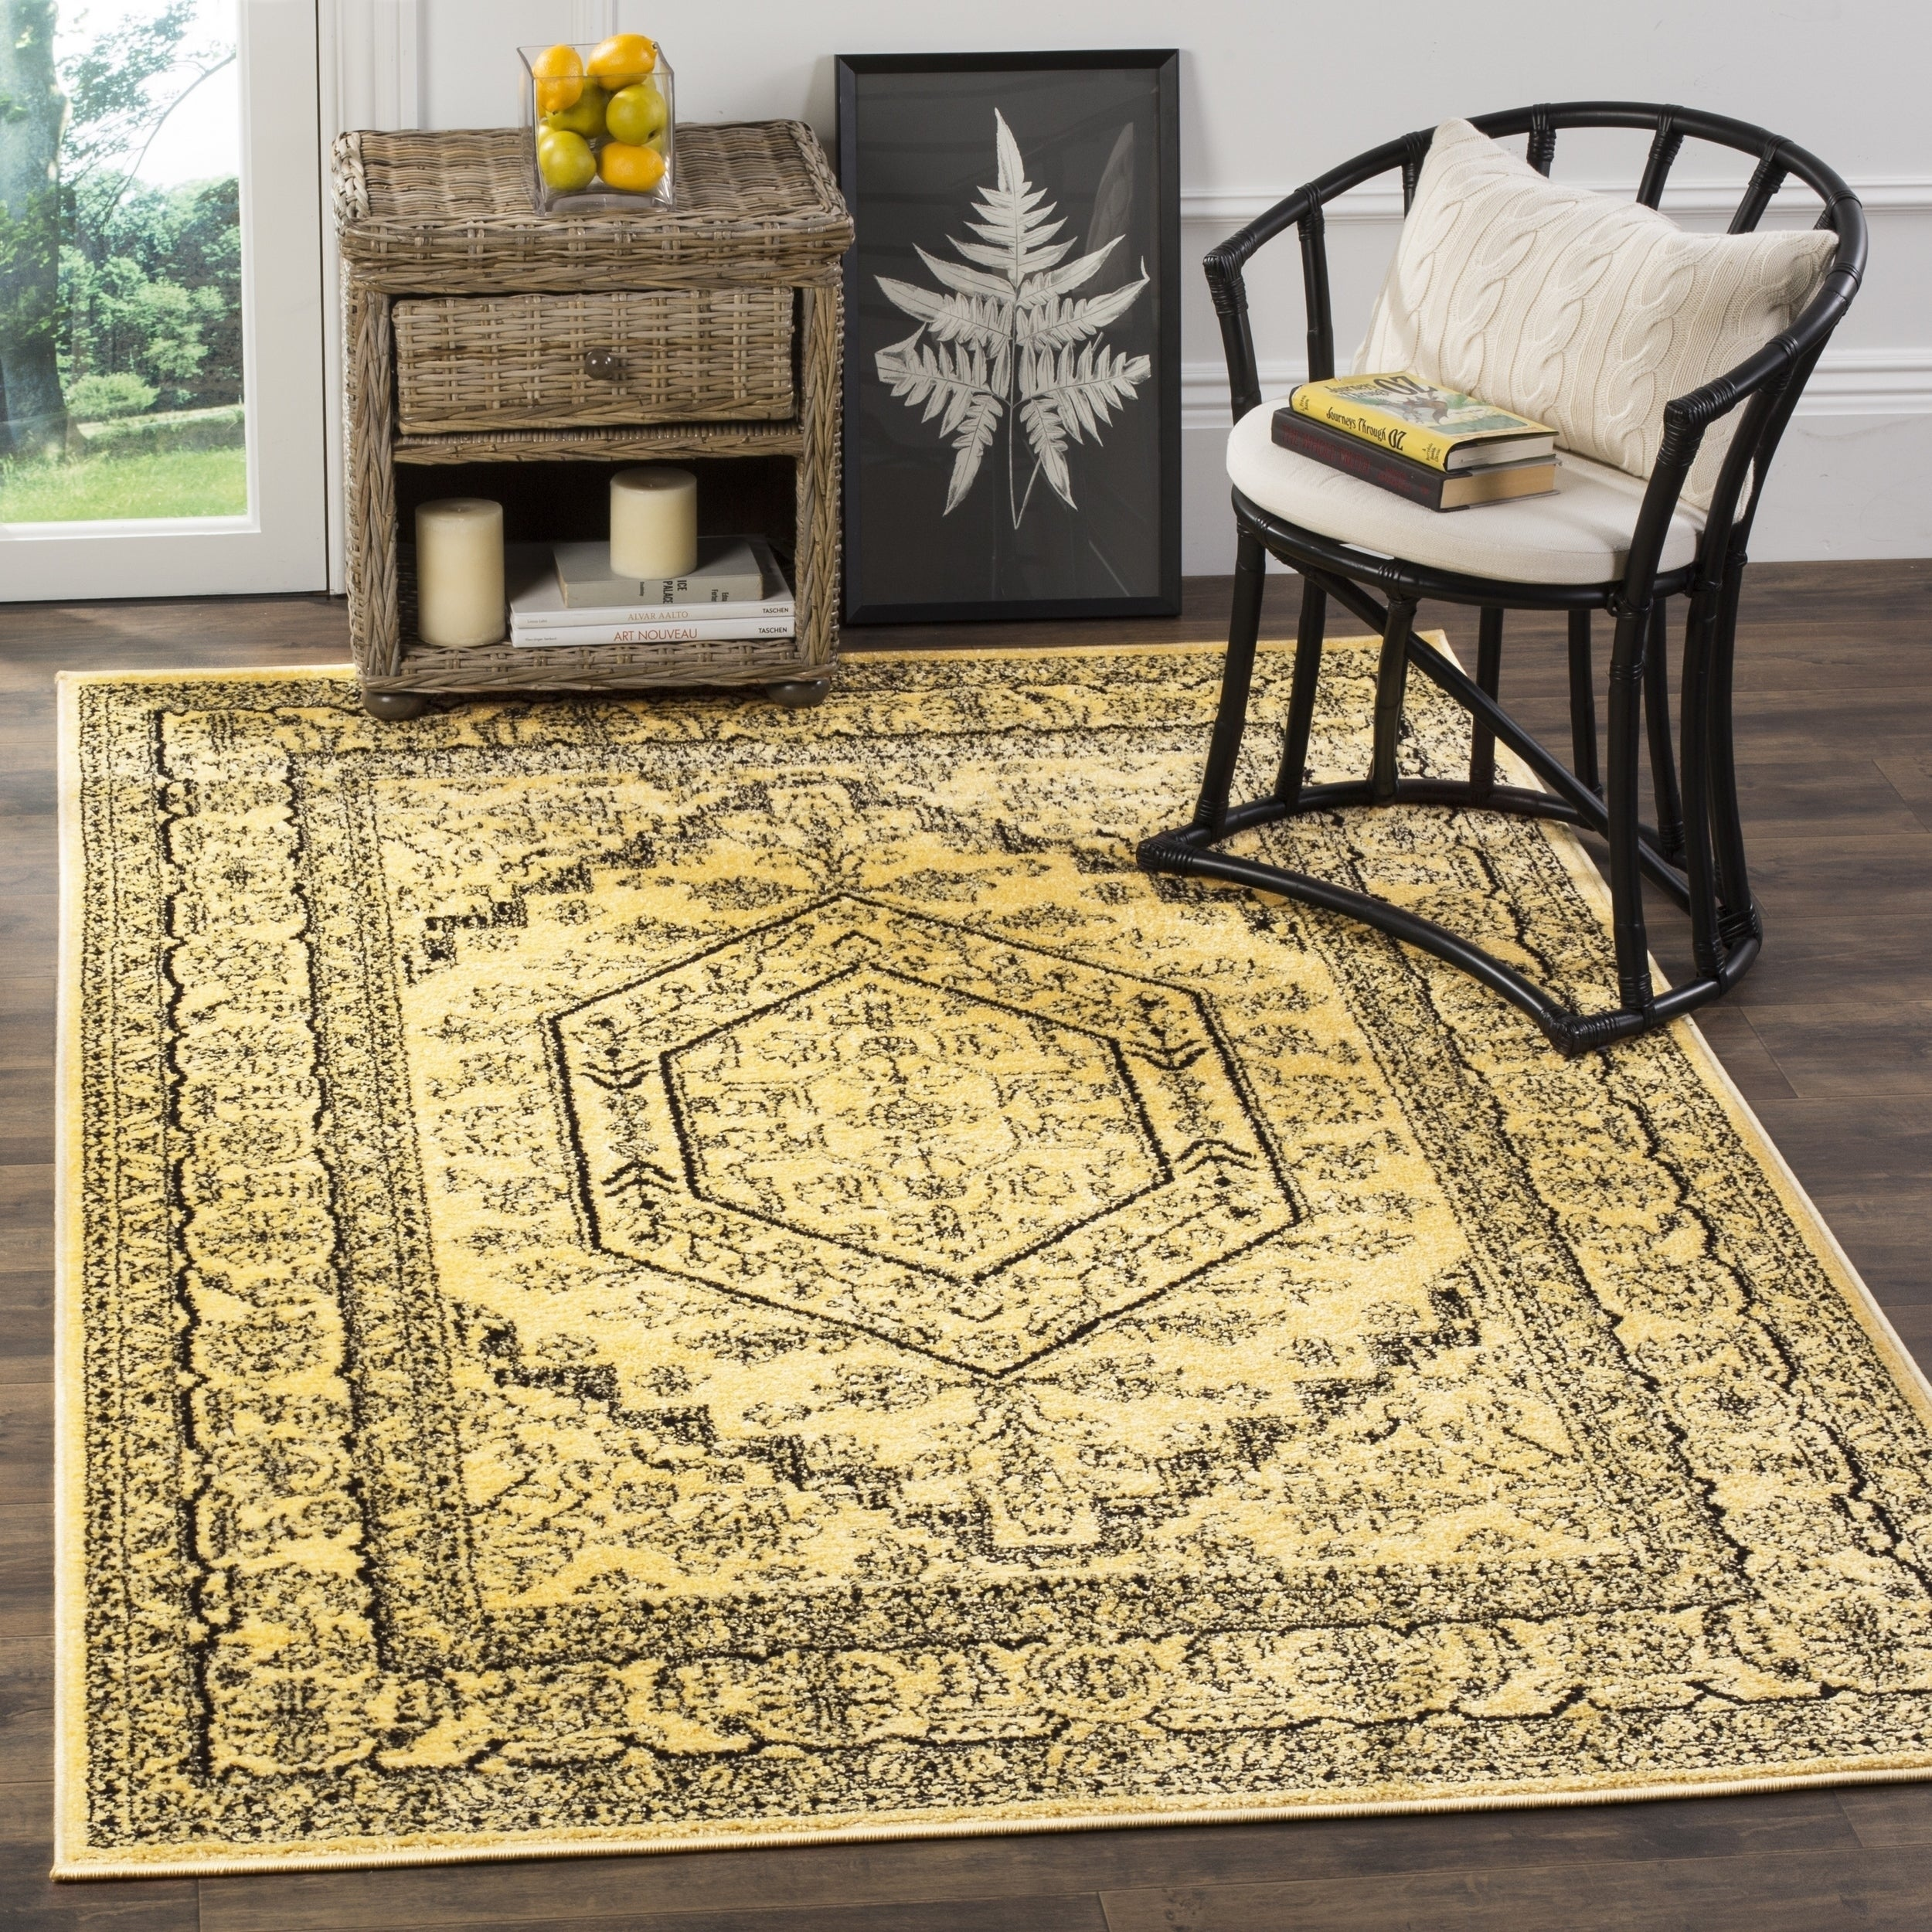 area walmart cozy black and dark rug for room idea chevron decor cheap living white yellow geometric charming with gold at throw your floors rugs contemporary pattren